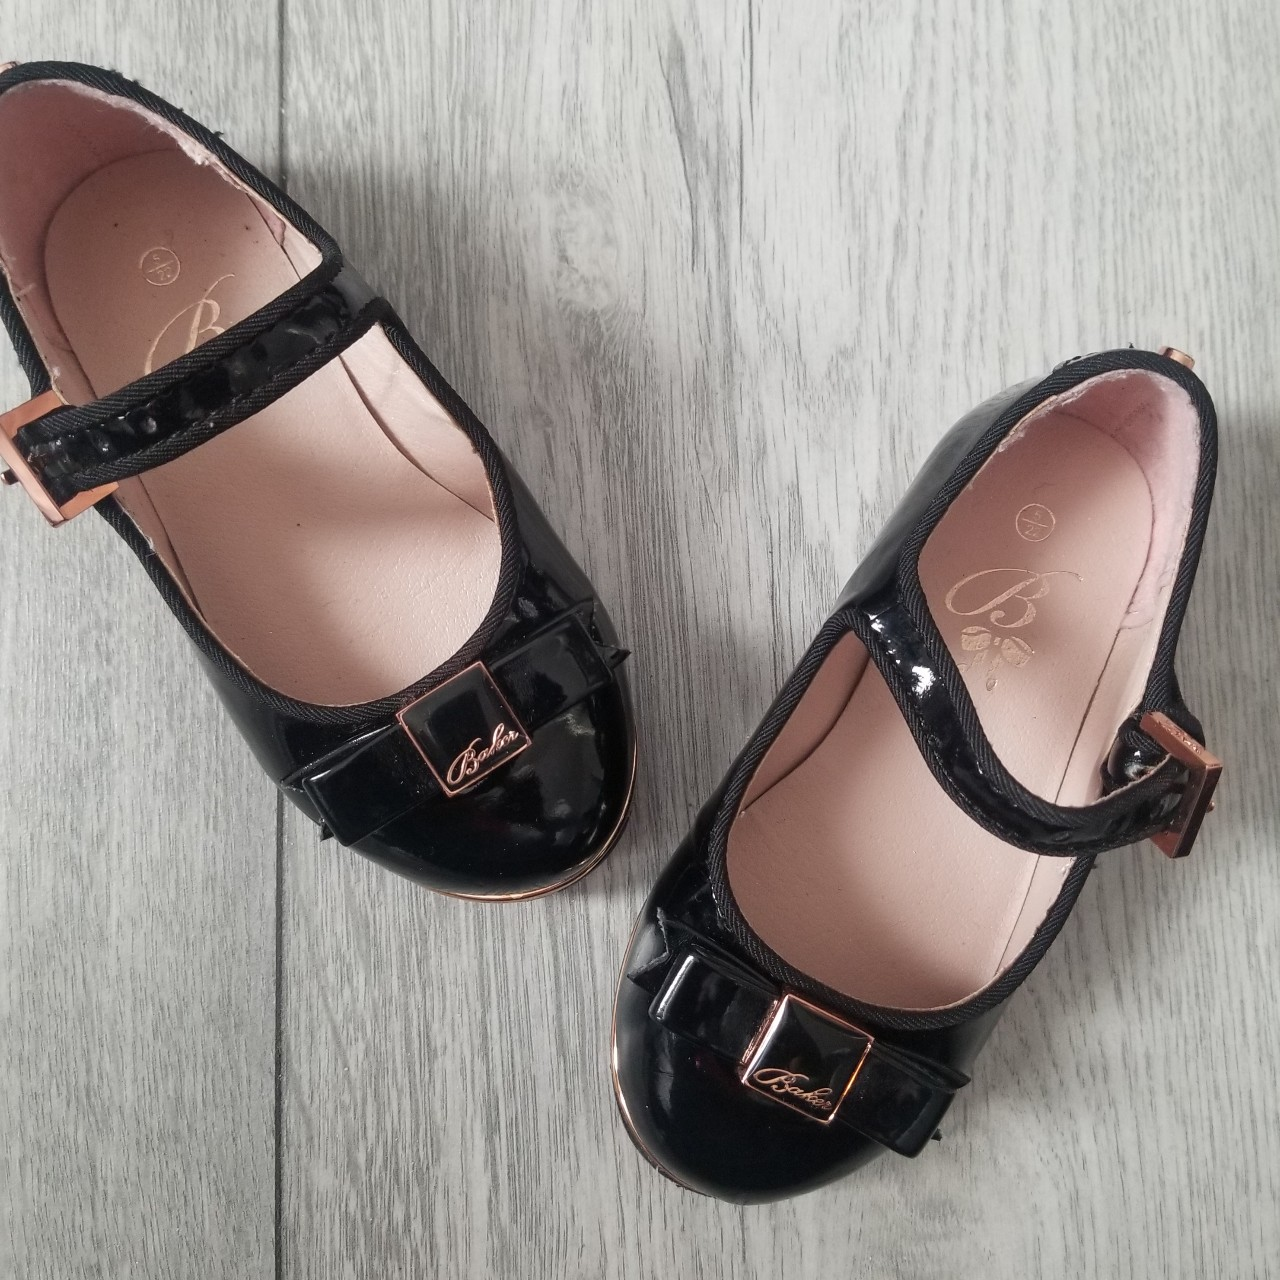 Patent Ted Baker dolly shoes in infant